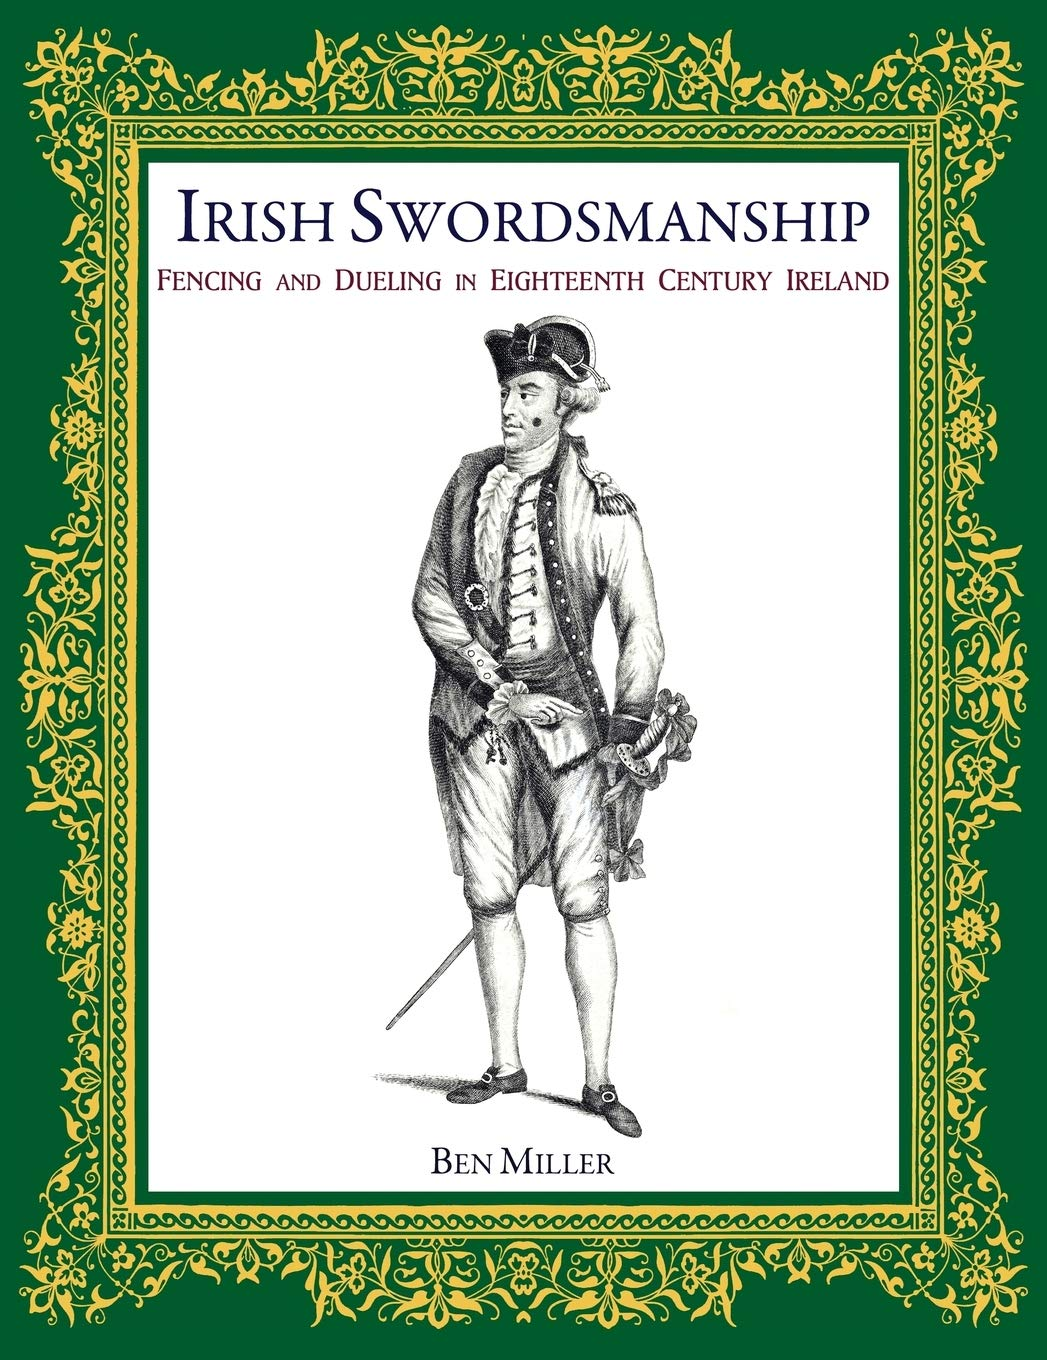 Image OfIrish Swordsmanship: Fencing And Dueling In Eighteenth Century Ireland